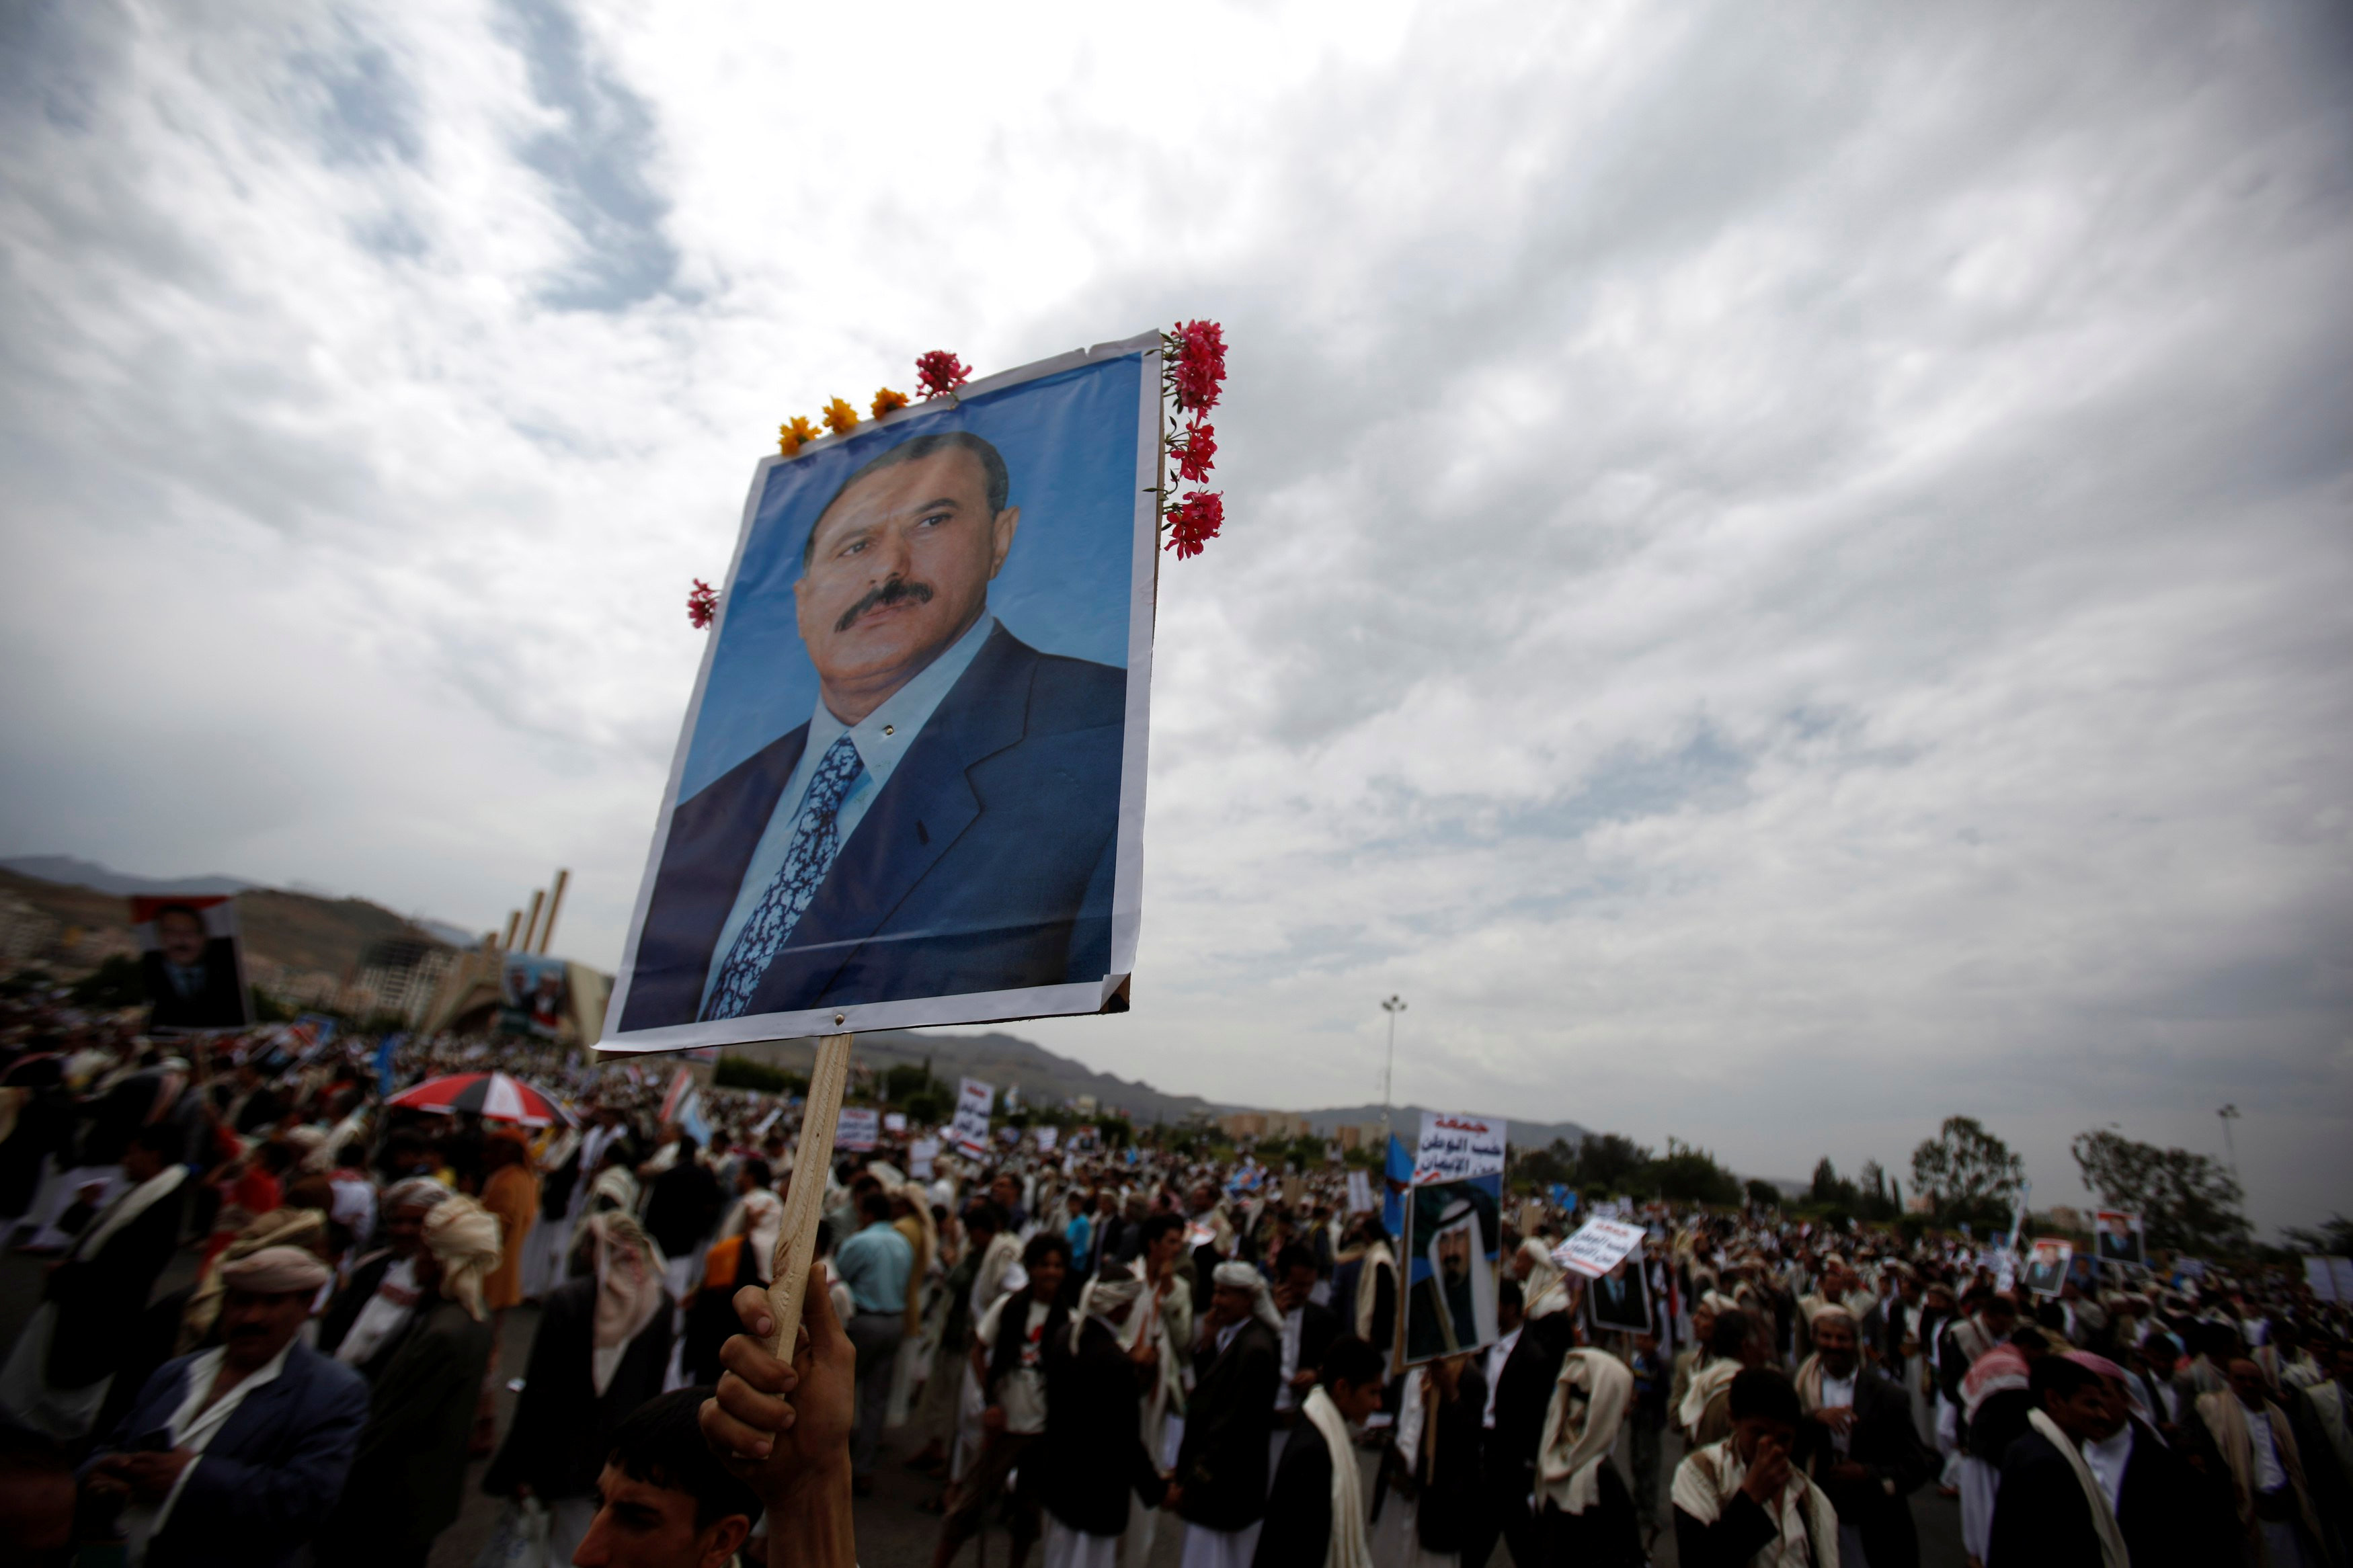 A supporter of Yemen's then President Ali Abdullah Saleh waves a poster featuring him during a rally to show support for him in Sanaa September 9, 2011.